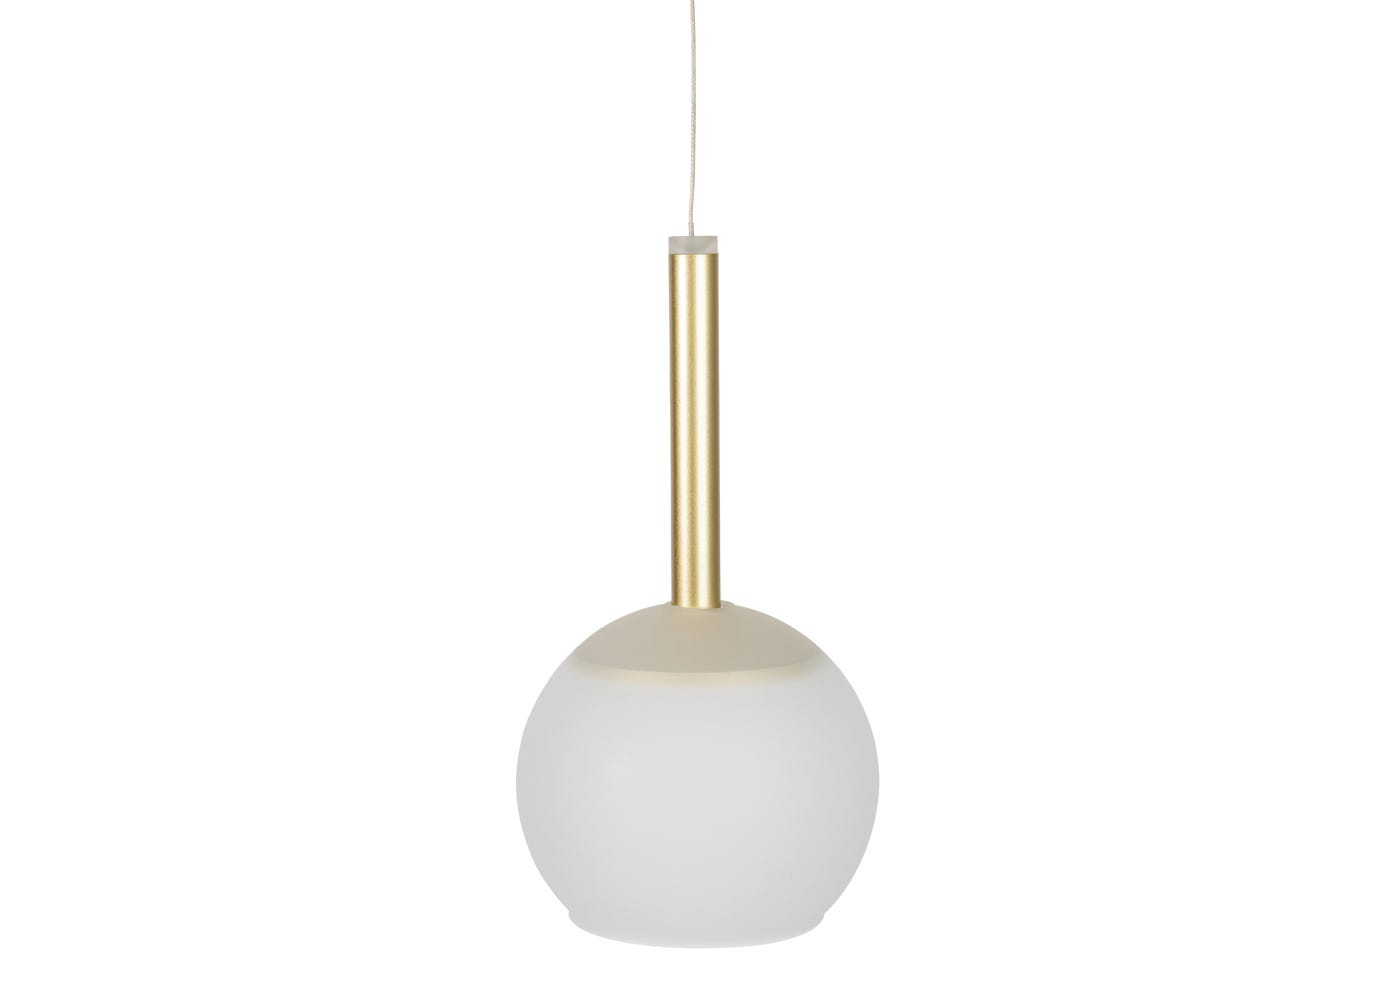 Frosted glass shade with disc long LED pendant in gold off (please note the pendant is sold separately).